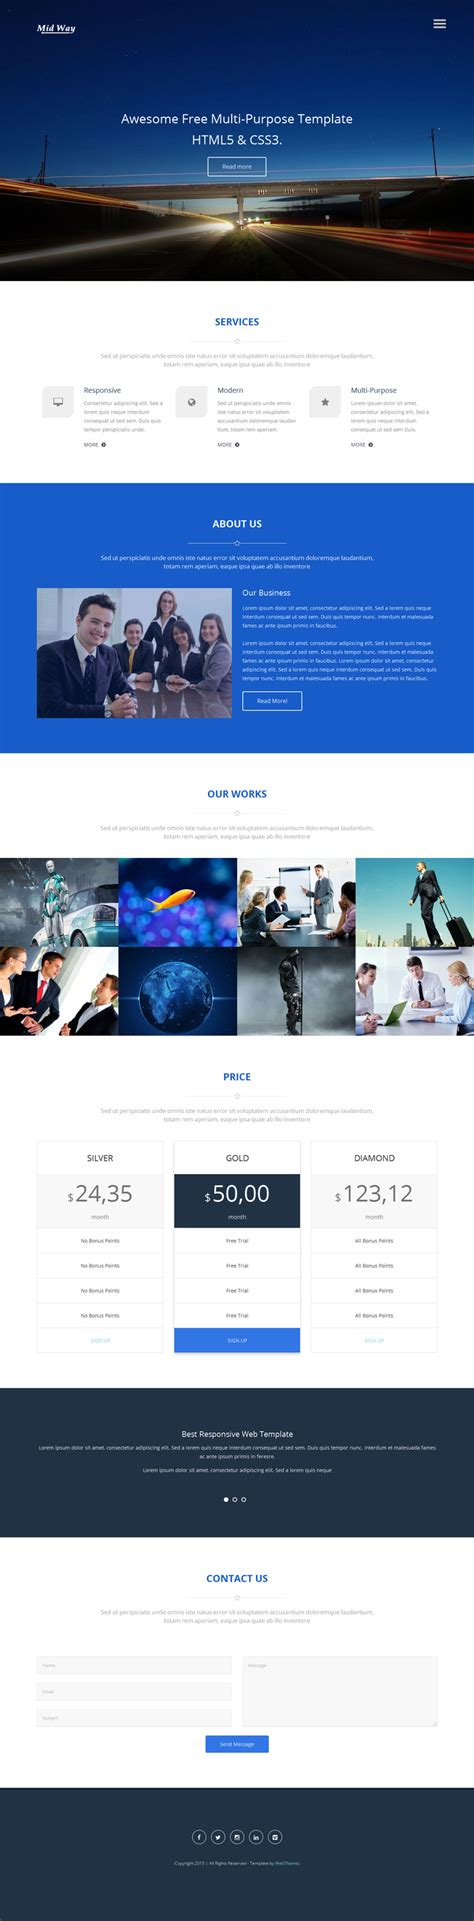 html5 best templates 10 best free website html5 templates february 2015